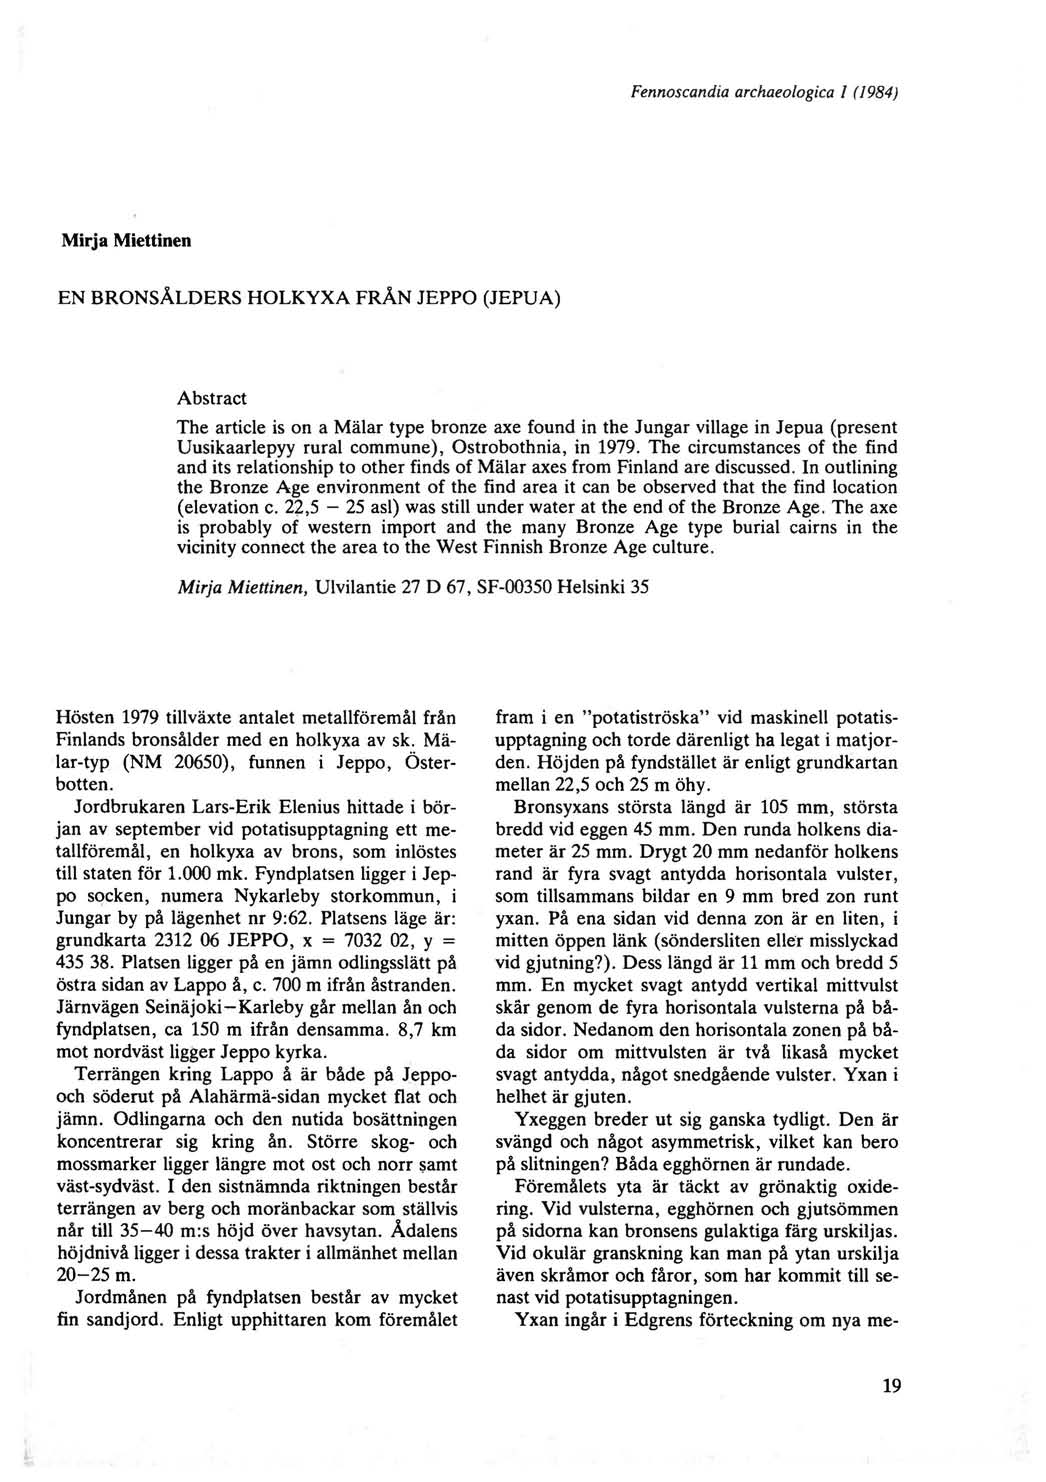 Fennoscandia archaeoiogica I (1984) Mirja Miettinen EN BRONSALDERS HOLKYXA FRAN JEPPO (JEPUA) Abstract The article is on a Mlilar type bronze axe found in the Jungar village in Jepua (present